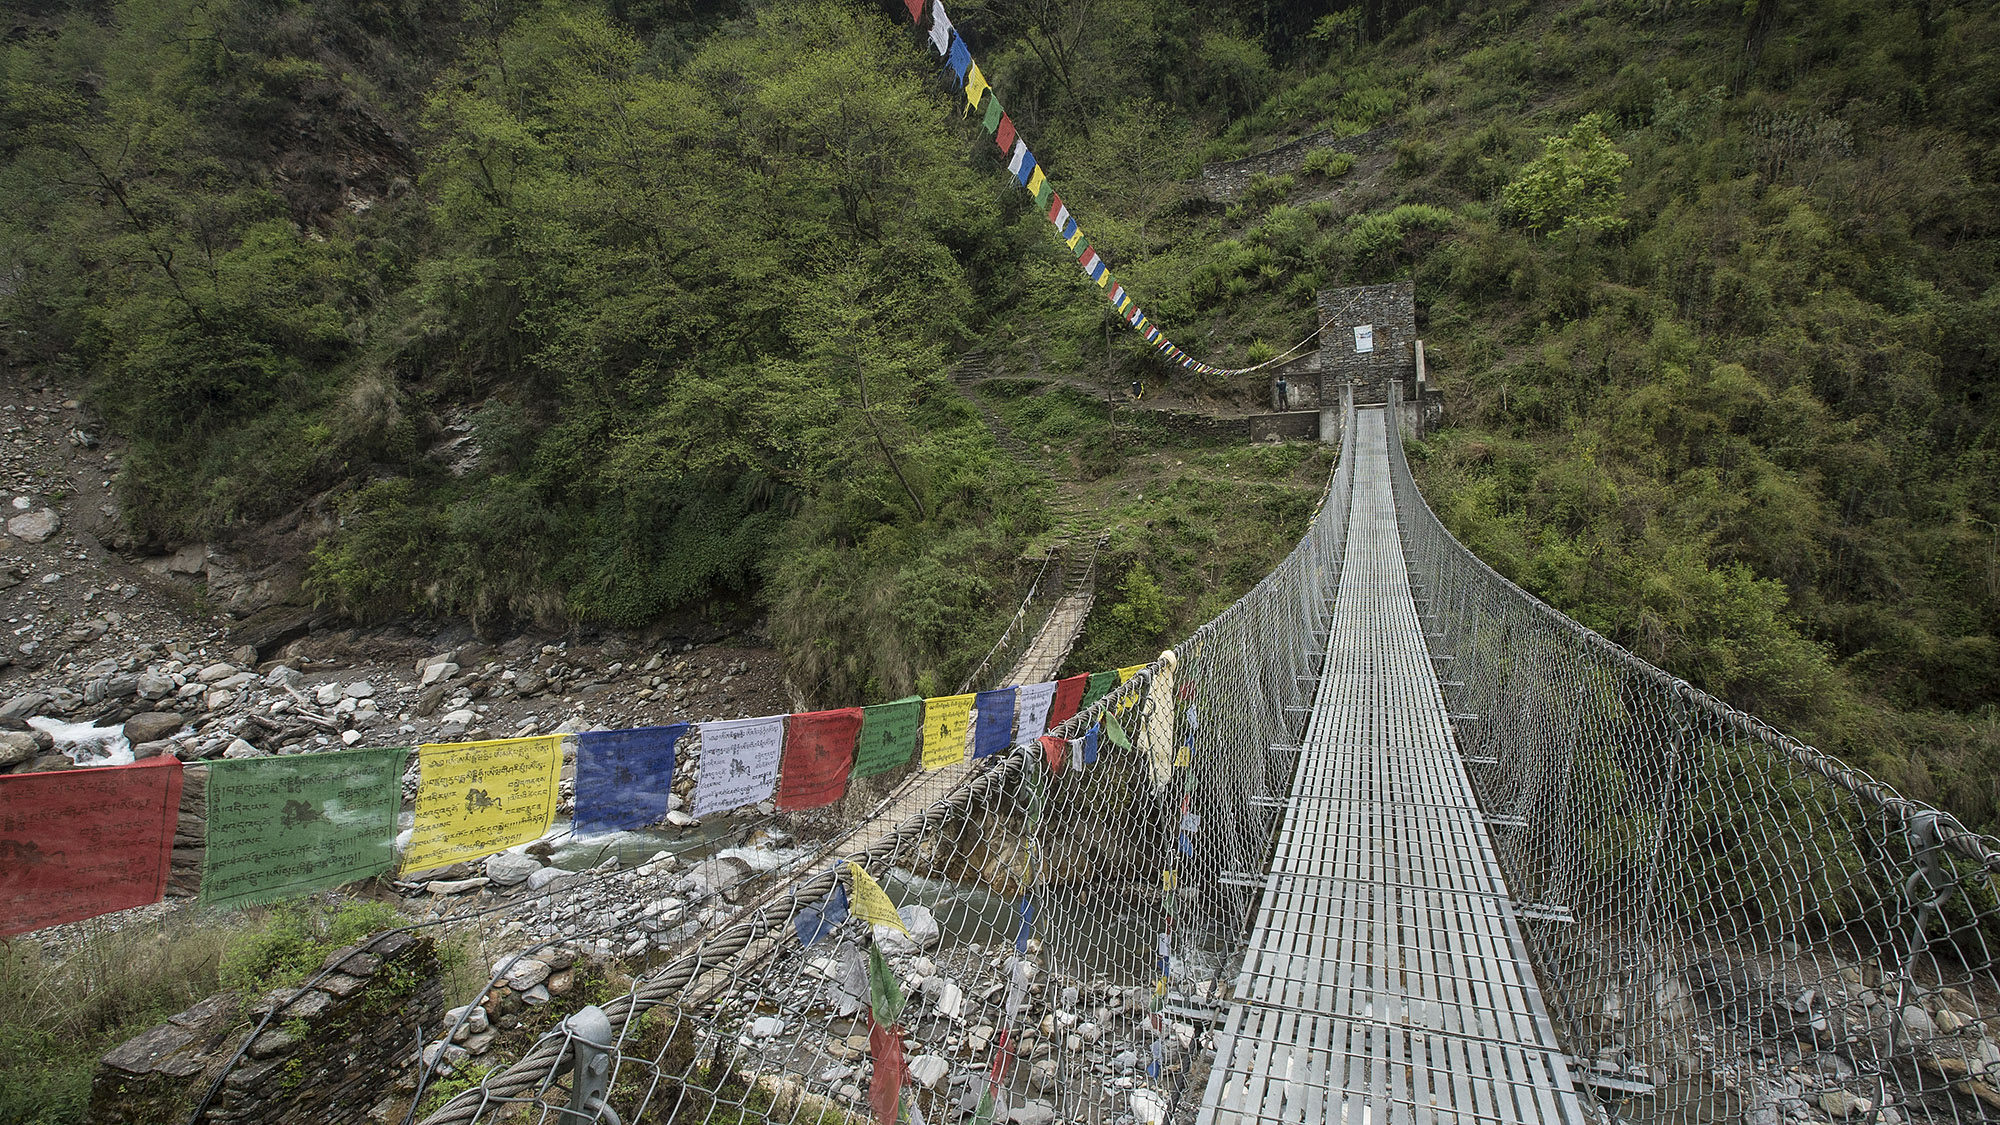 The Annapurna trek seemed more like endless steep climbs and steep descents. Often following these descents into a valley were steel cable bridges that allowed us to cross the numerous rivers that flowed through these low points.